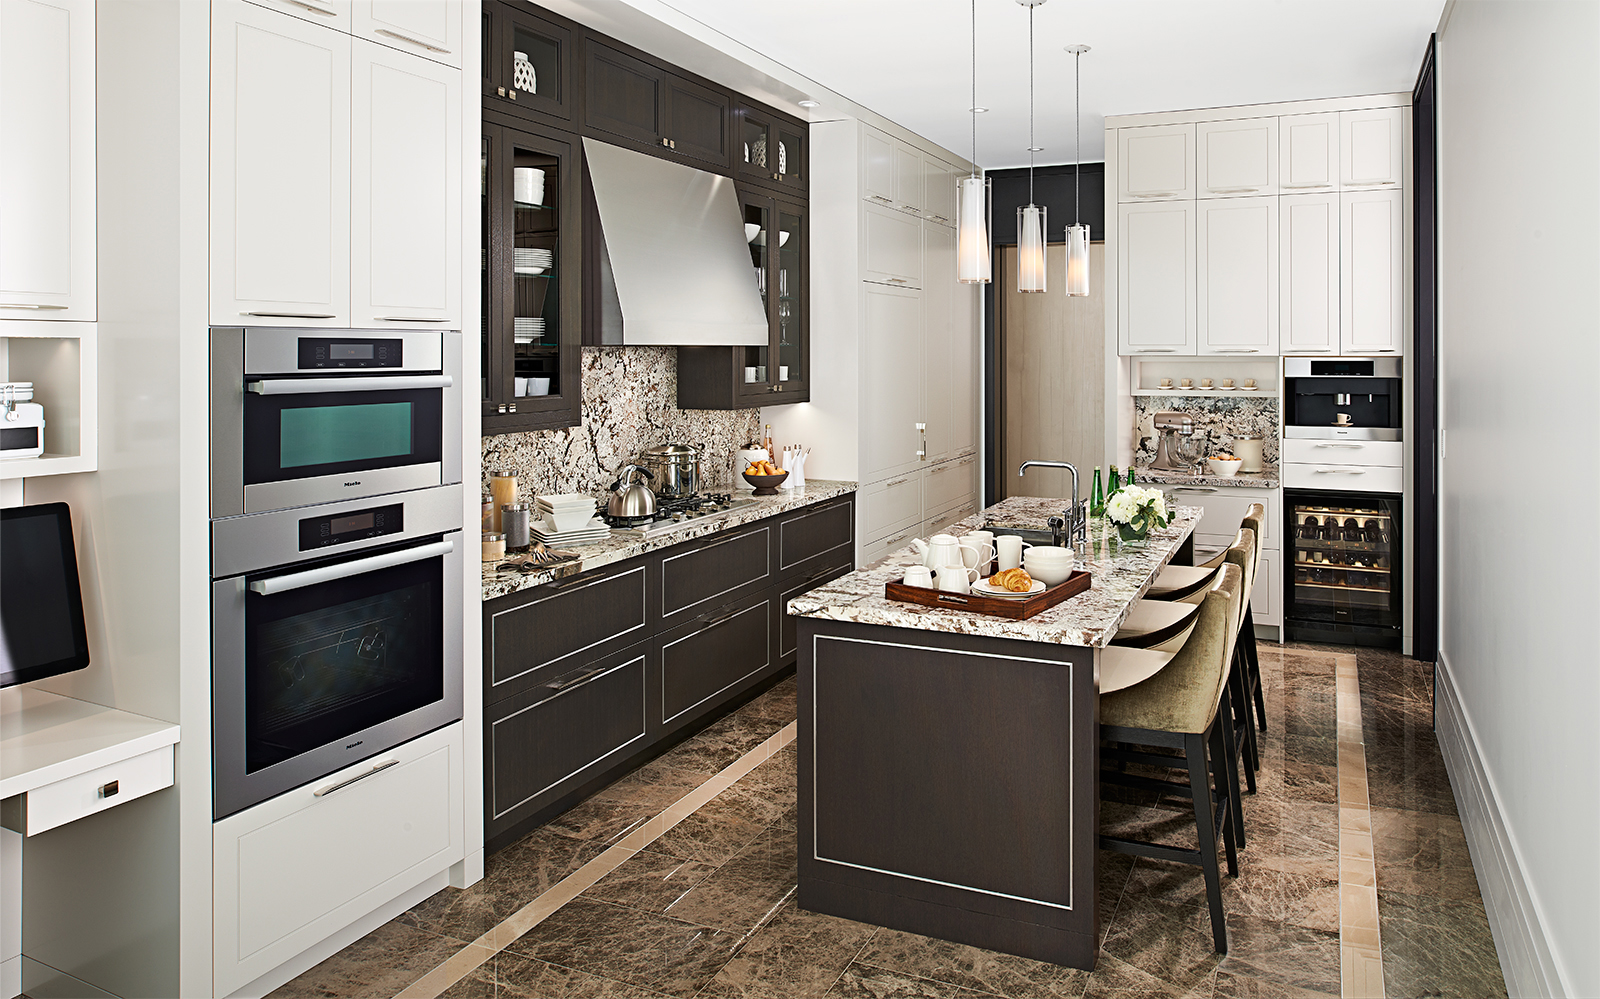 Downsview Kitchens. Toronto commercial photographer. Toronto architectural photographer. Architectural photographer